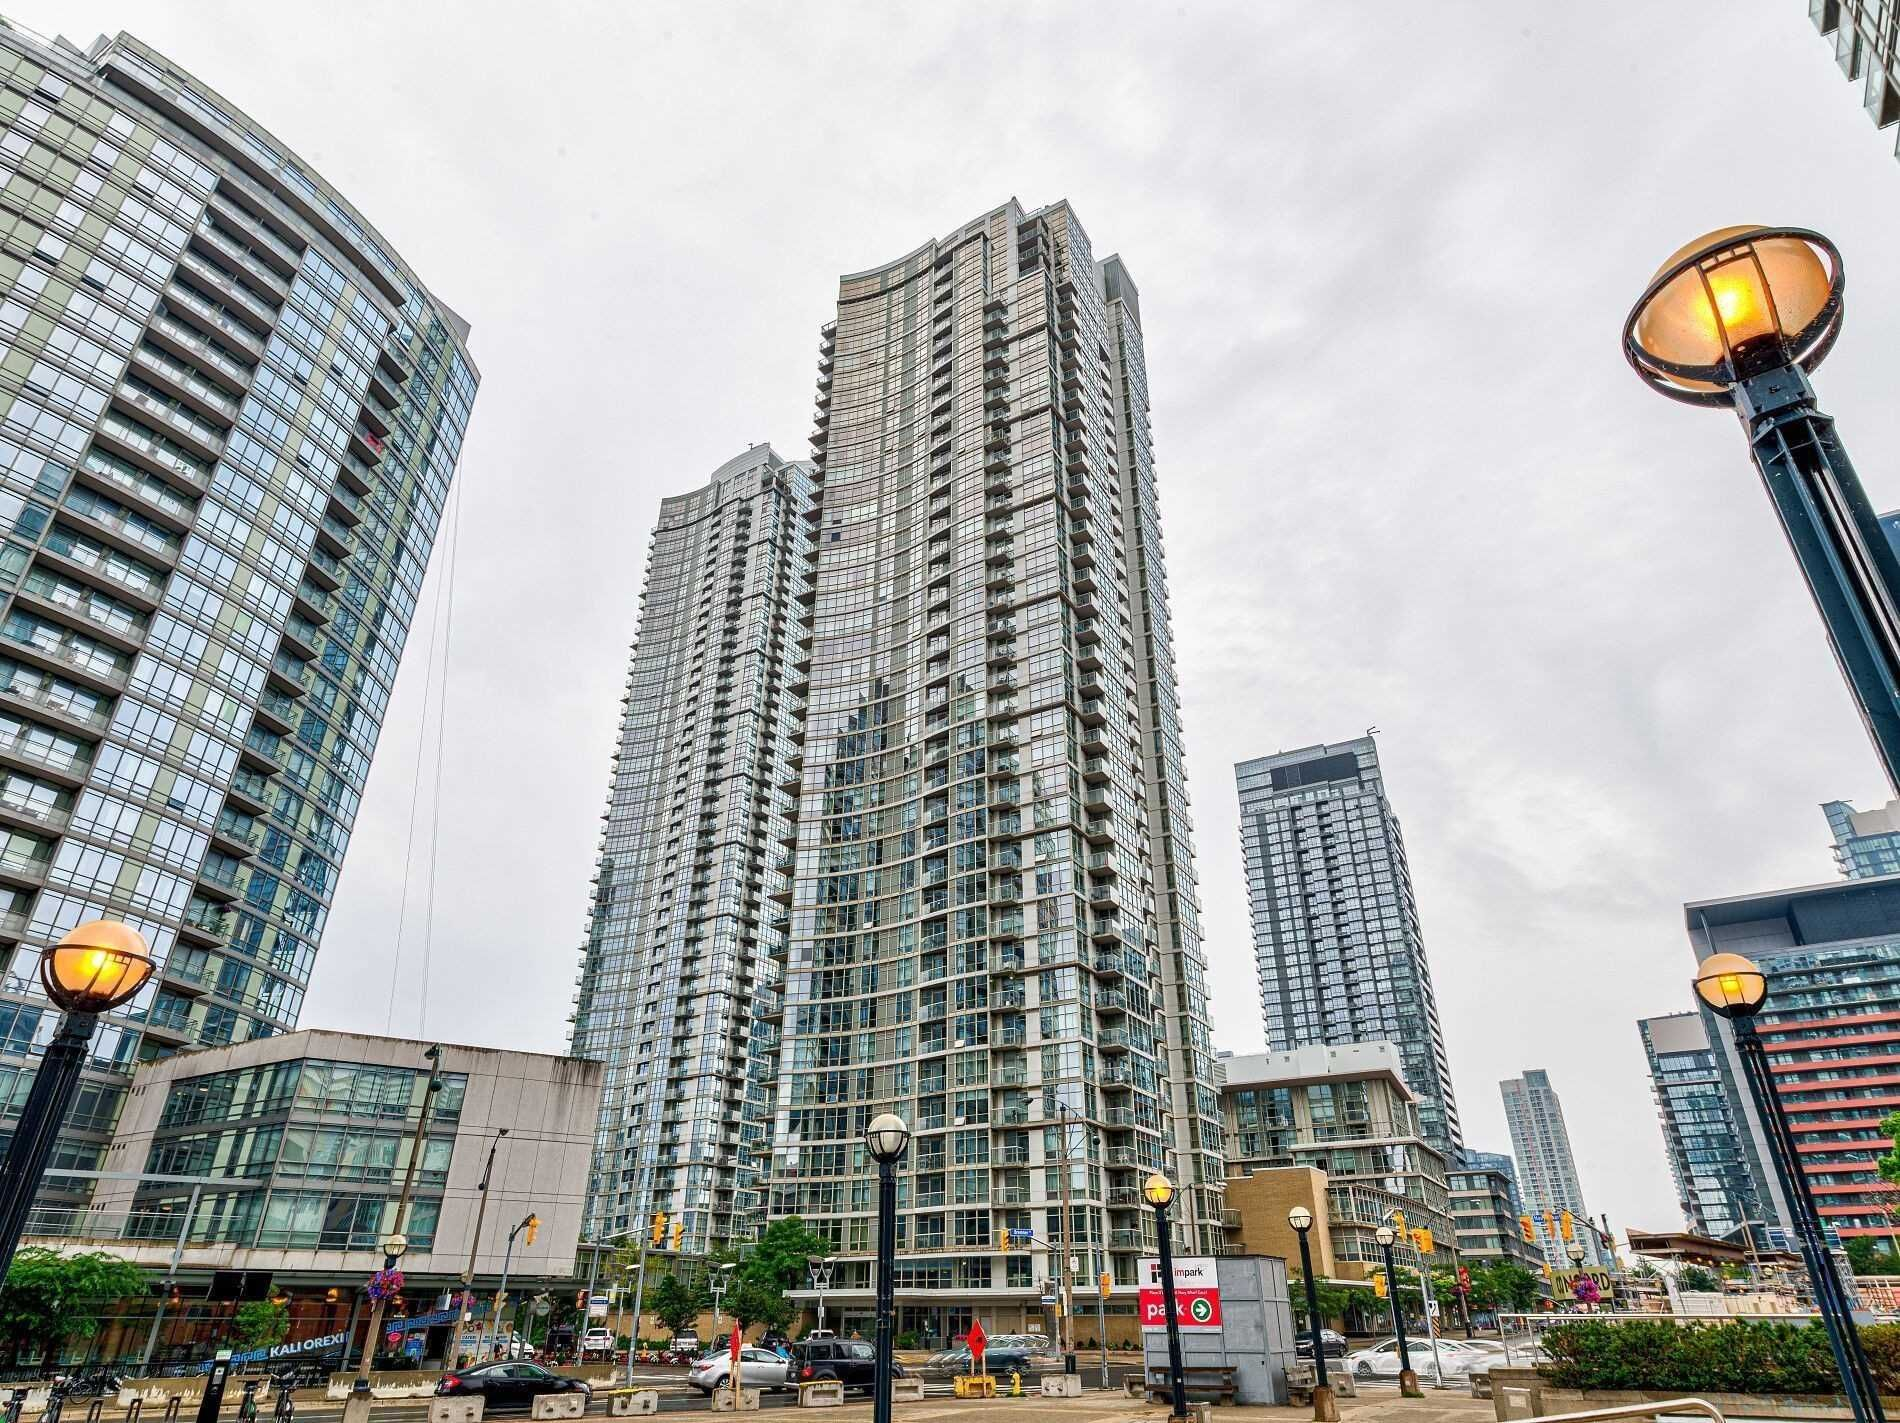 10 Navy Wharf Crt, unit 2906 for rent in Toronto - image #1